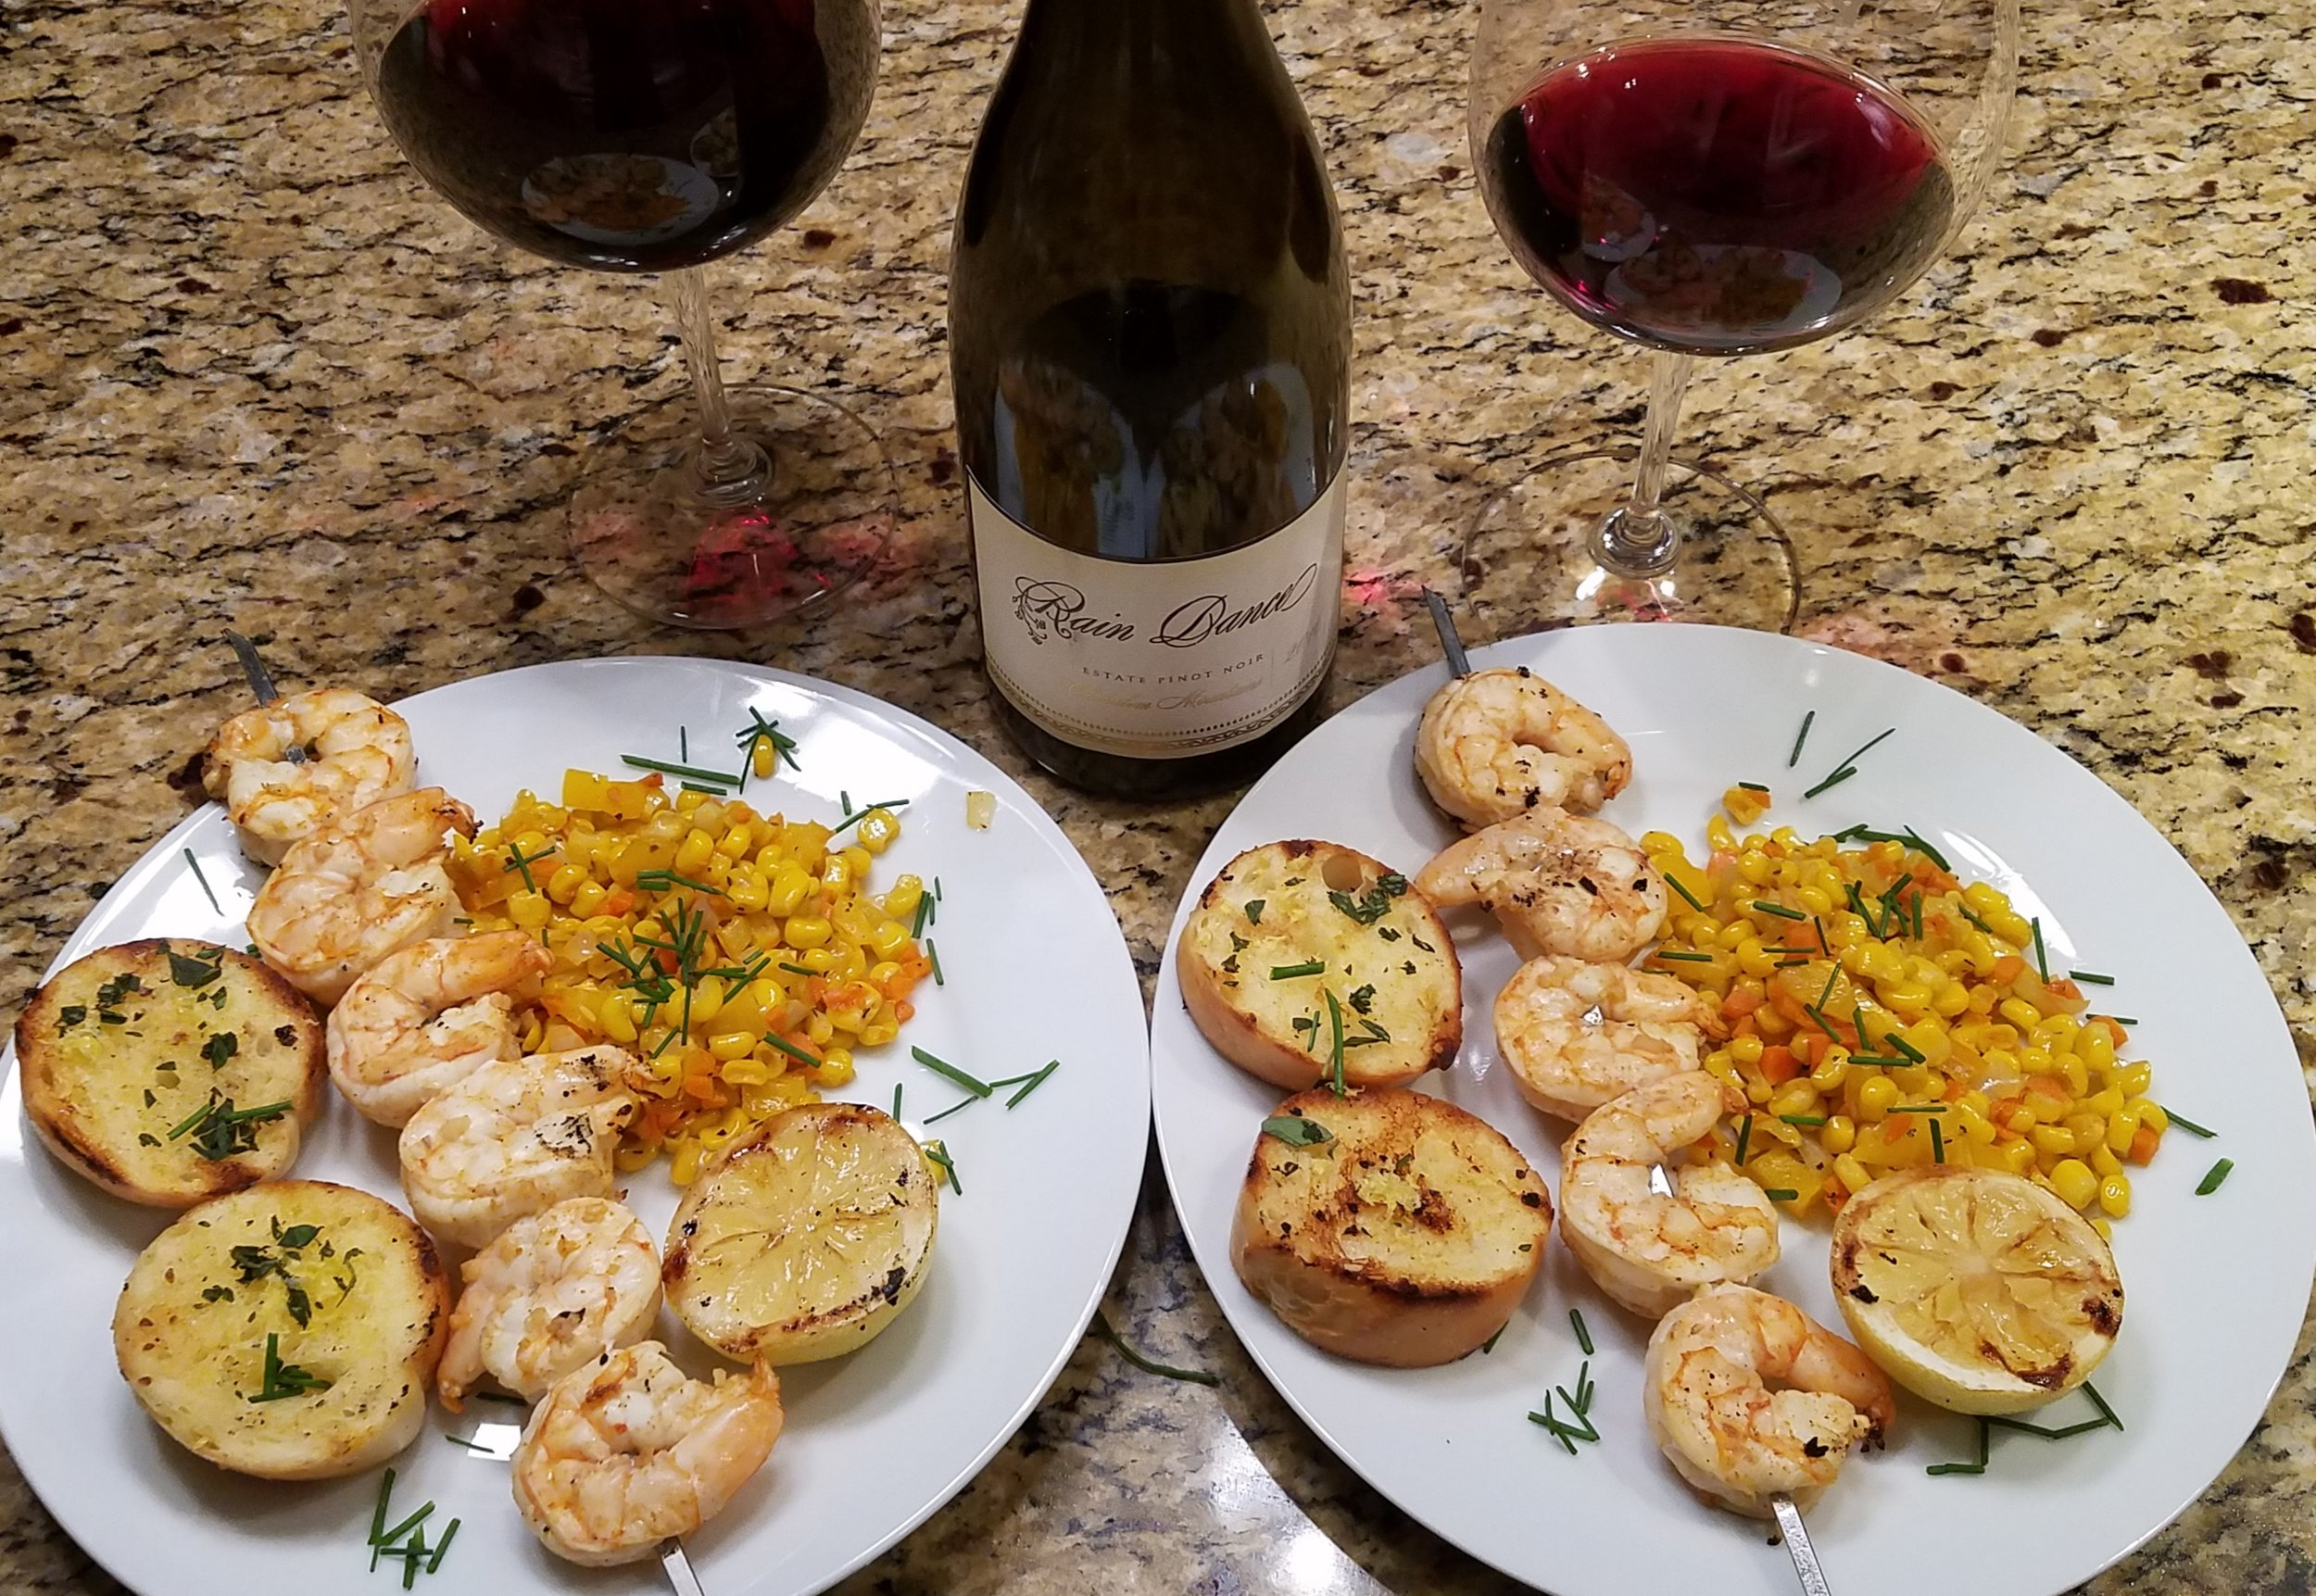 Spicy Shrimp with Sauteed Corn paired with Rain Dance Chehalem Mountains Pinot Noir